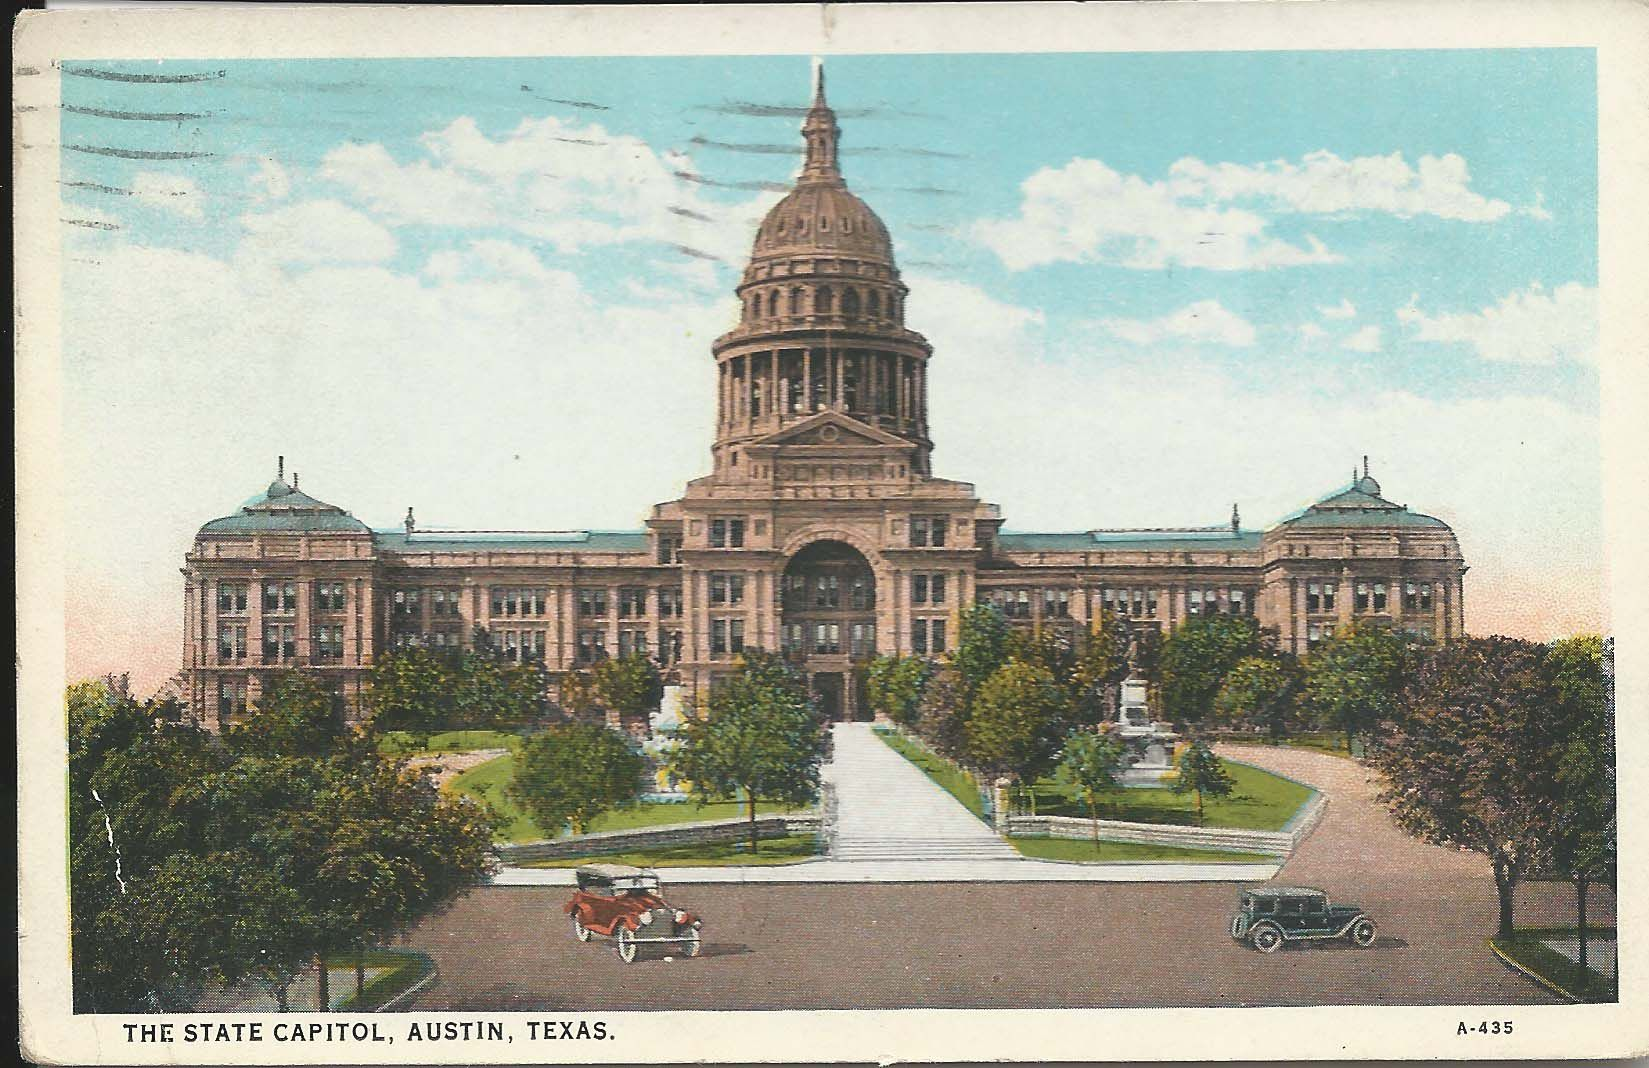 State Capitol, Austin, Texas.  Postmarked 1928. Joel Campbell owner.